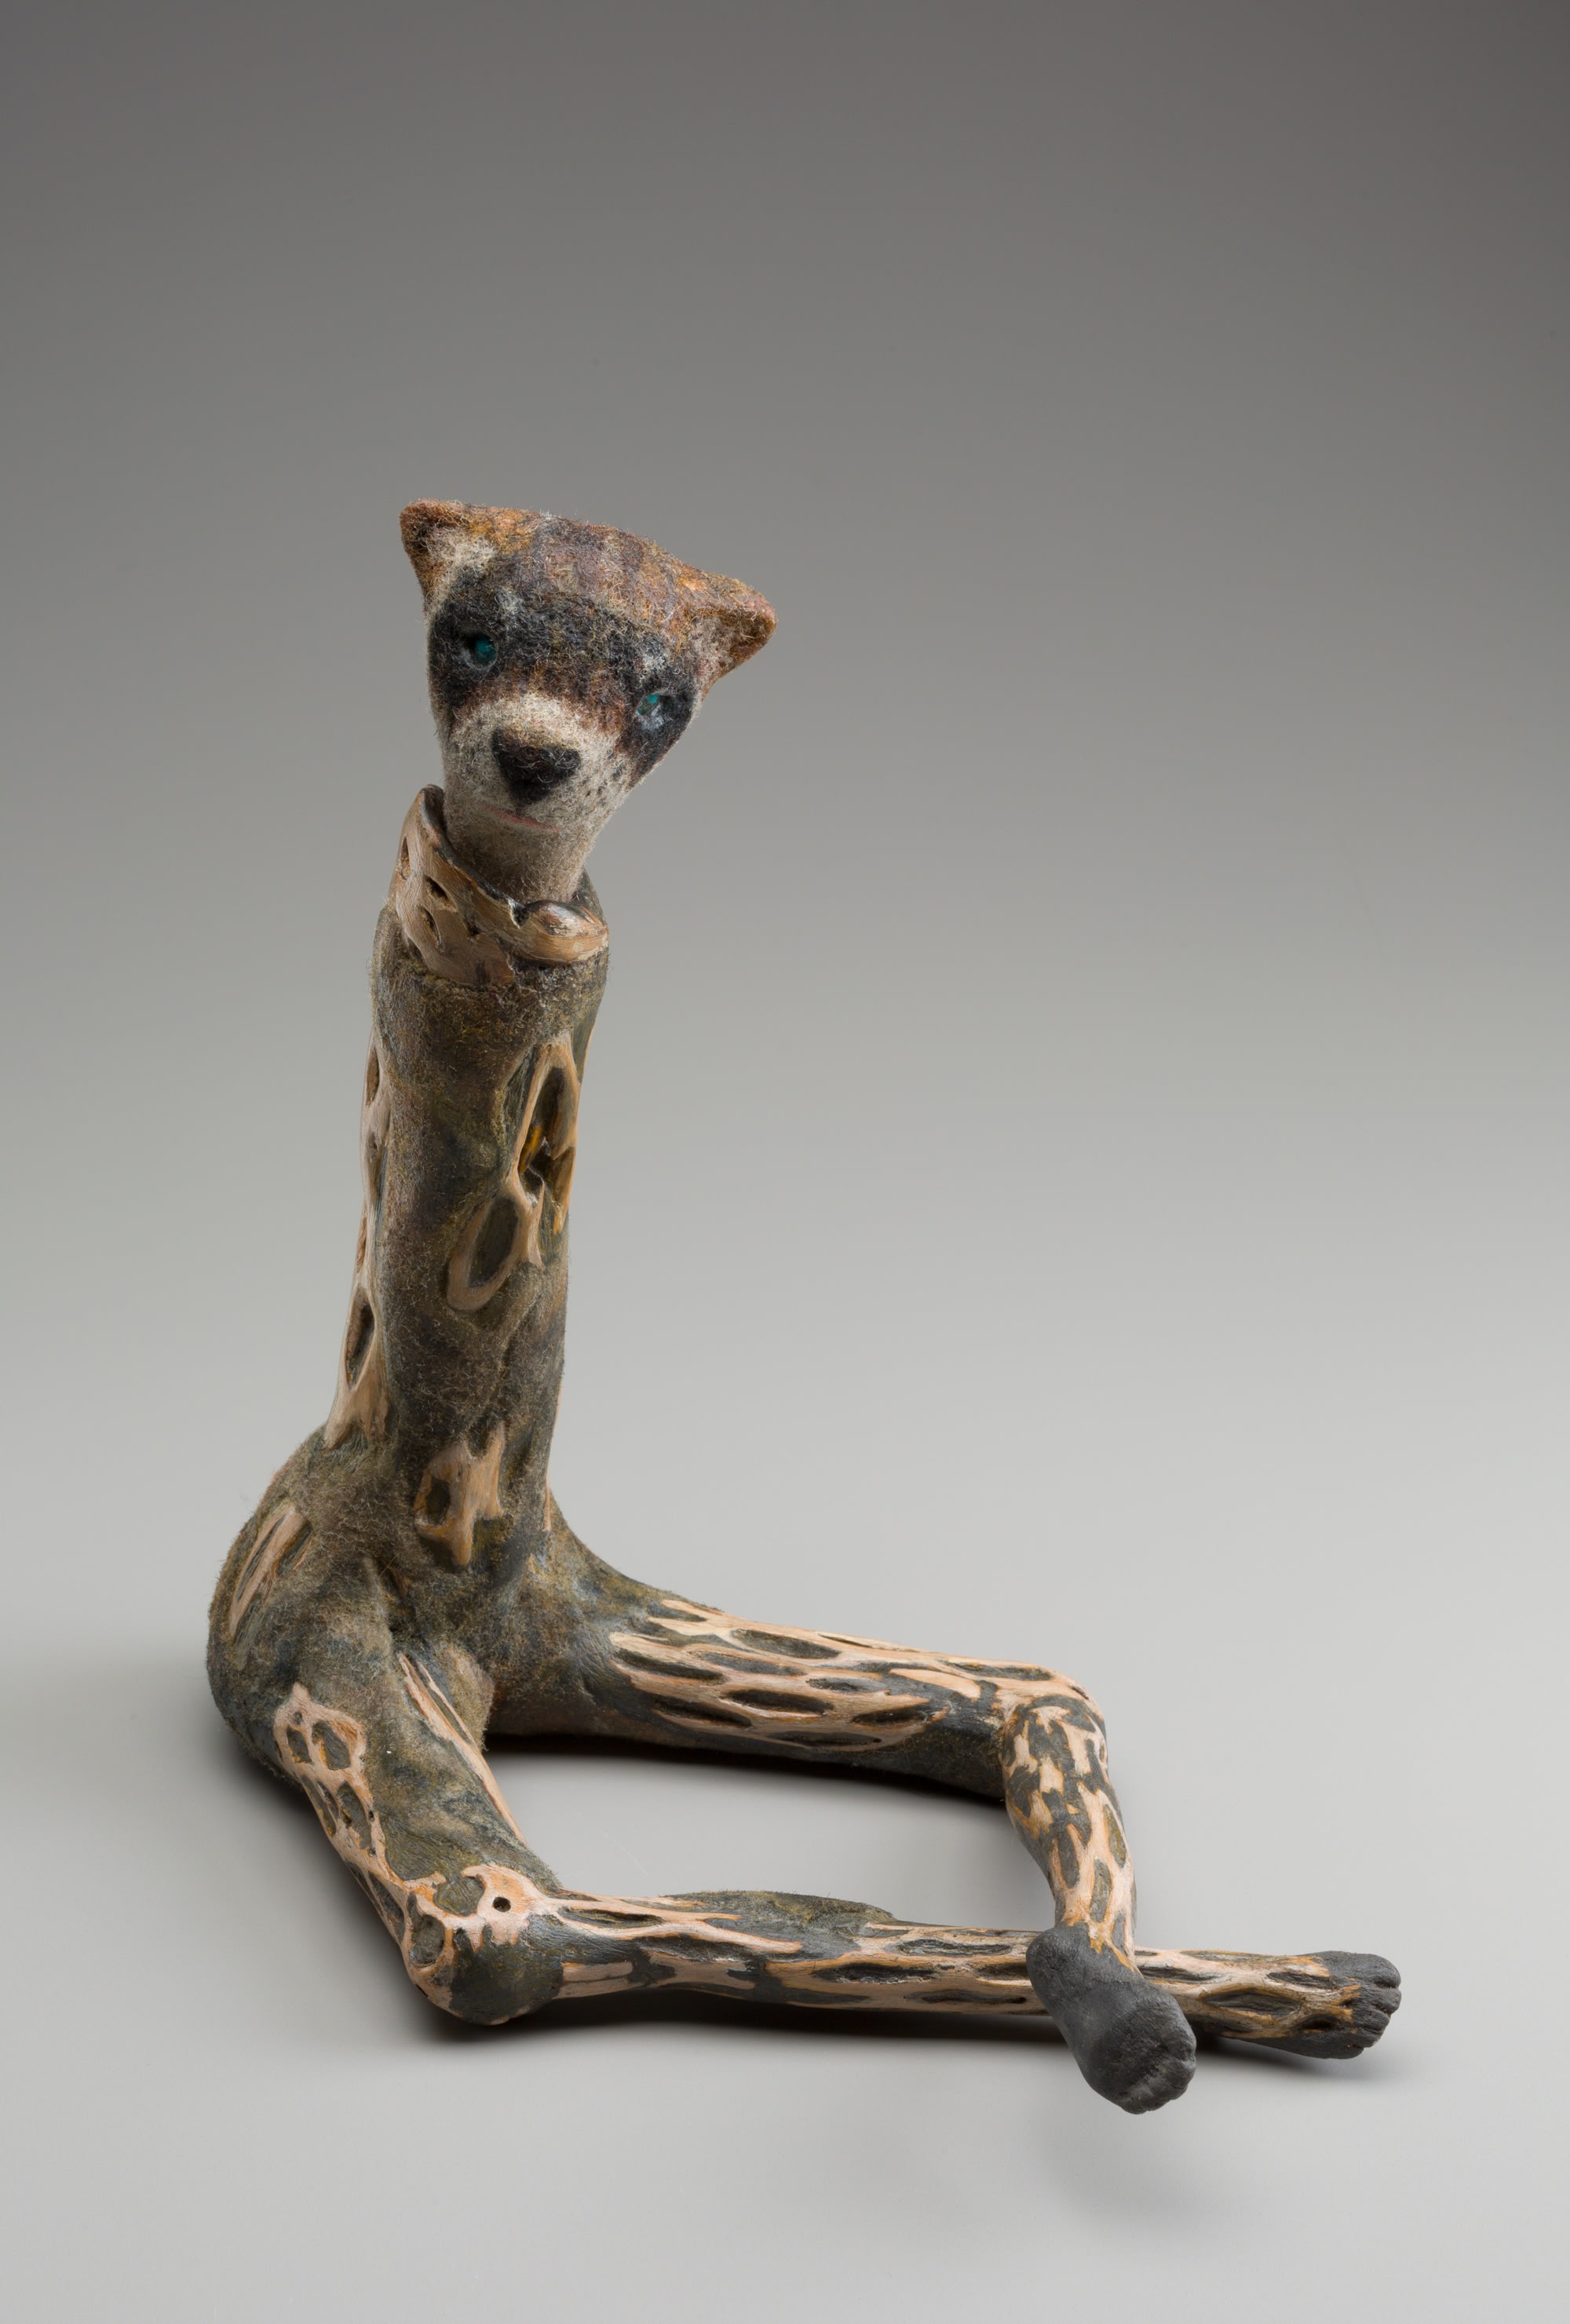 Sculpture by Susan Aaron-Taylor at Form & Concept Gallery